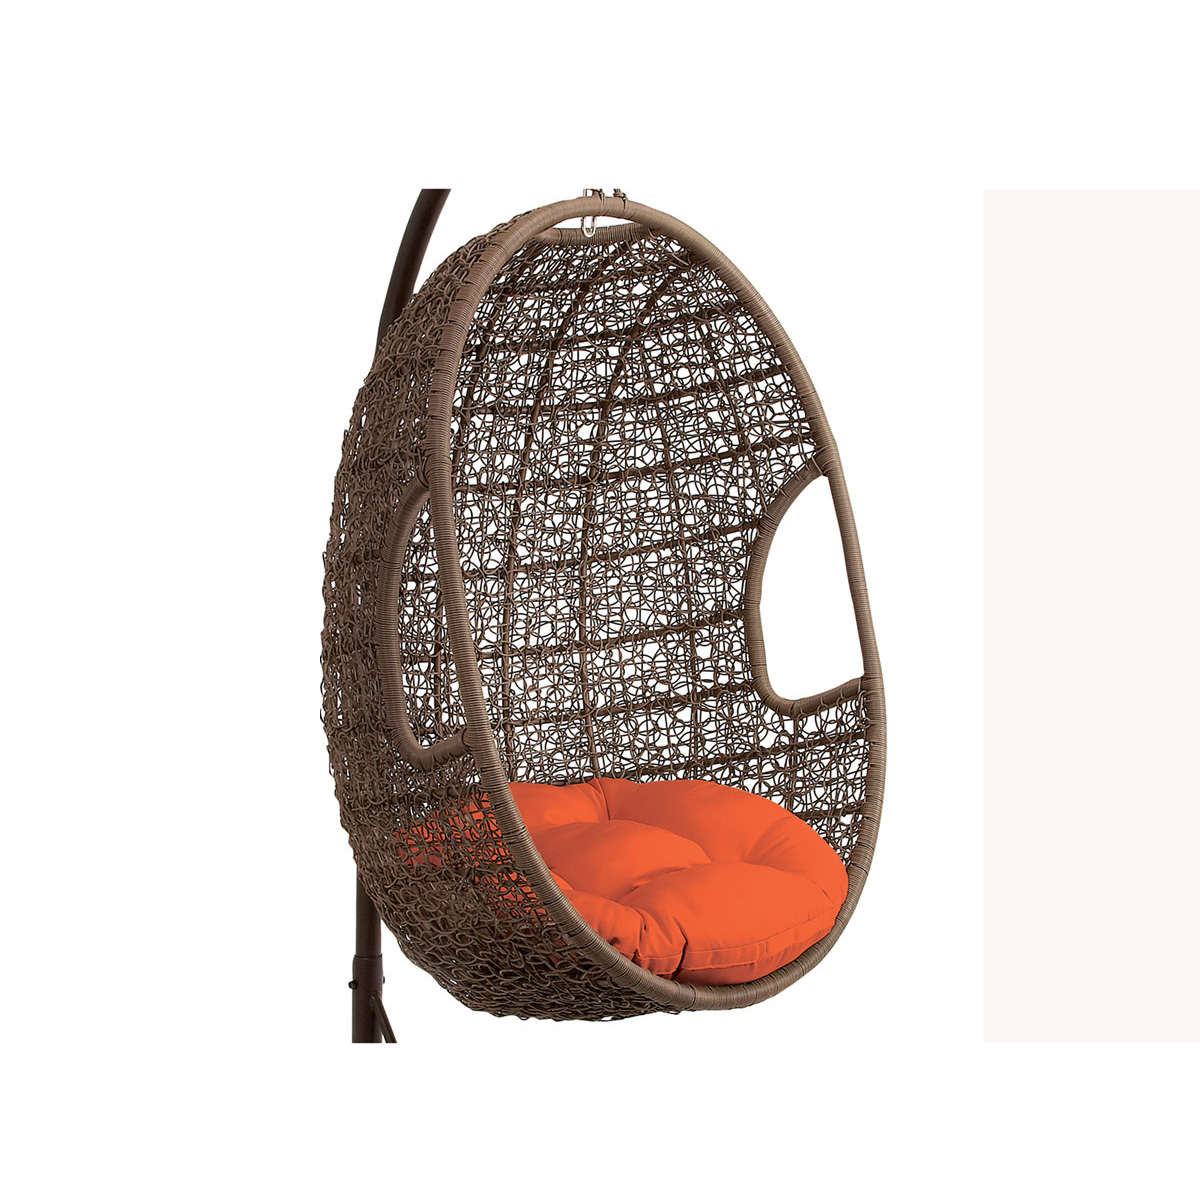 Outdoor Hanging Egg Chair Hanover Outdoor Wicker Rattan Hanging Egg Chair Swing With